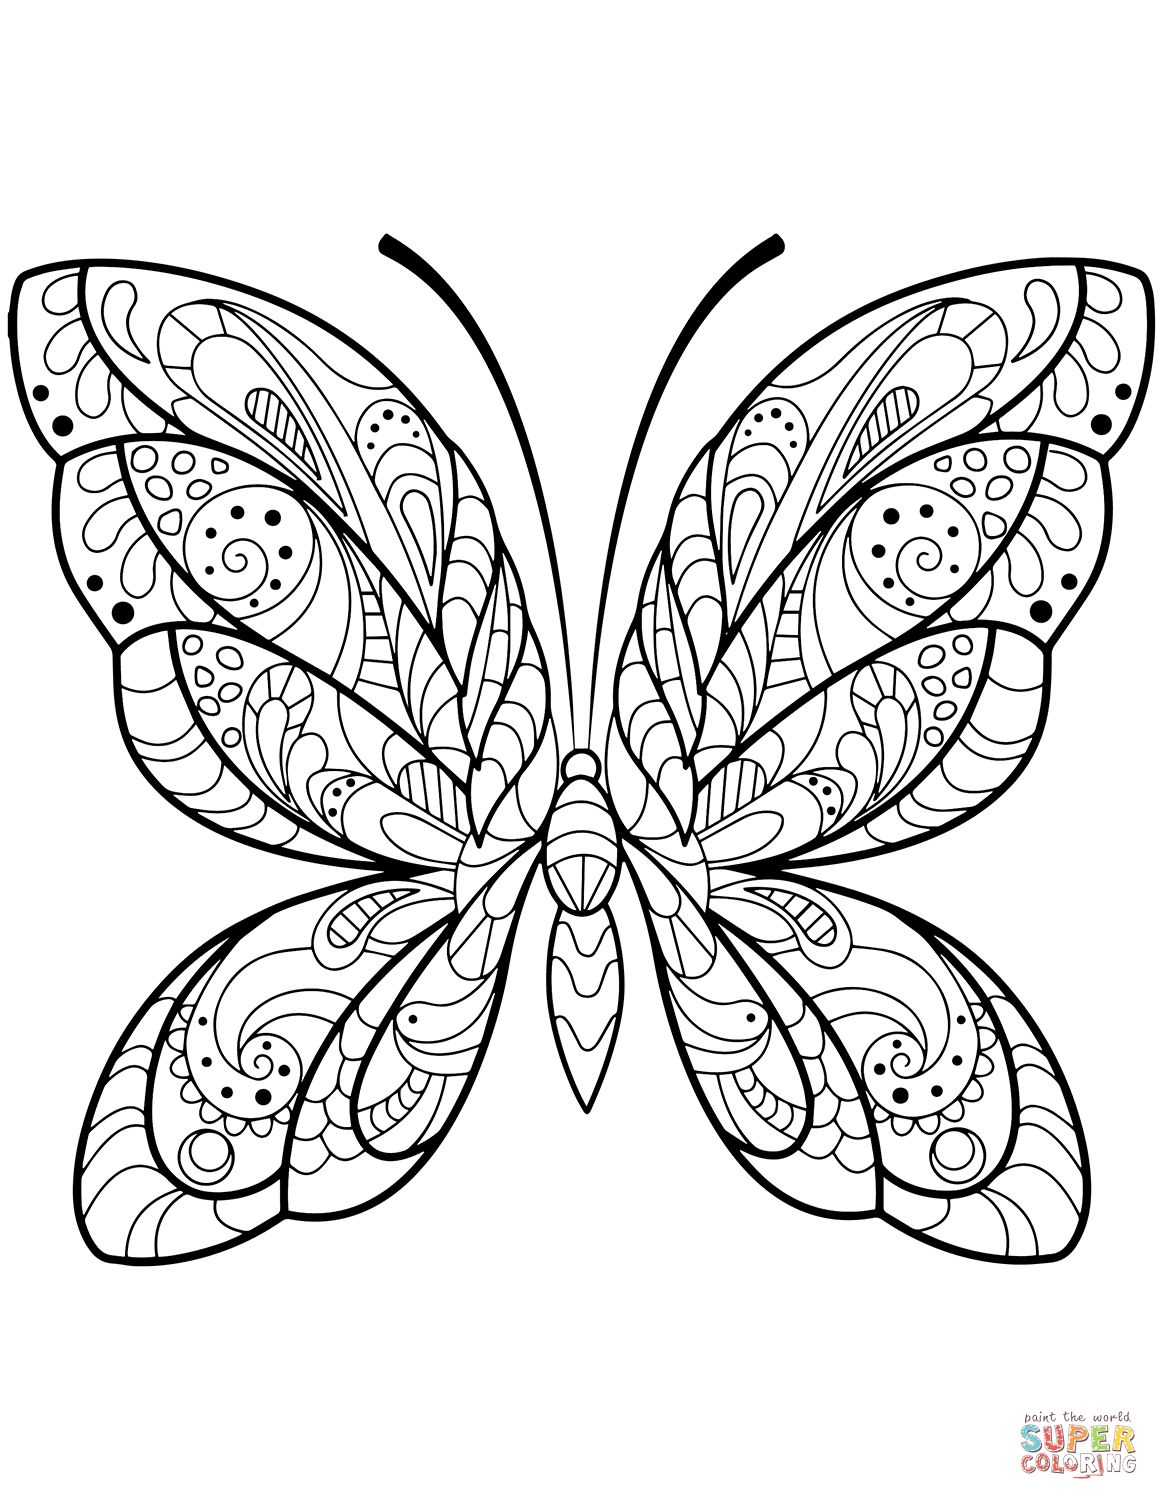 Free Butterfly Coloring Pages Butterfly Coloring Pages Free Coloring Pages Entitlementtrap Com Insect Coloring Pages Butterfly Coloring Page Pattern Coloring Pages